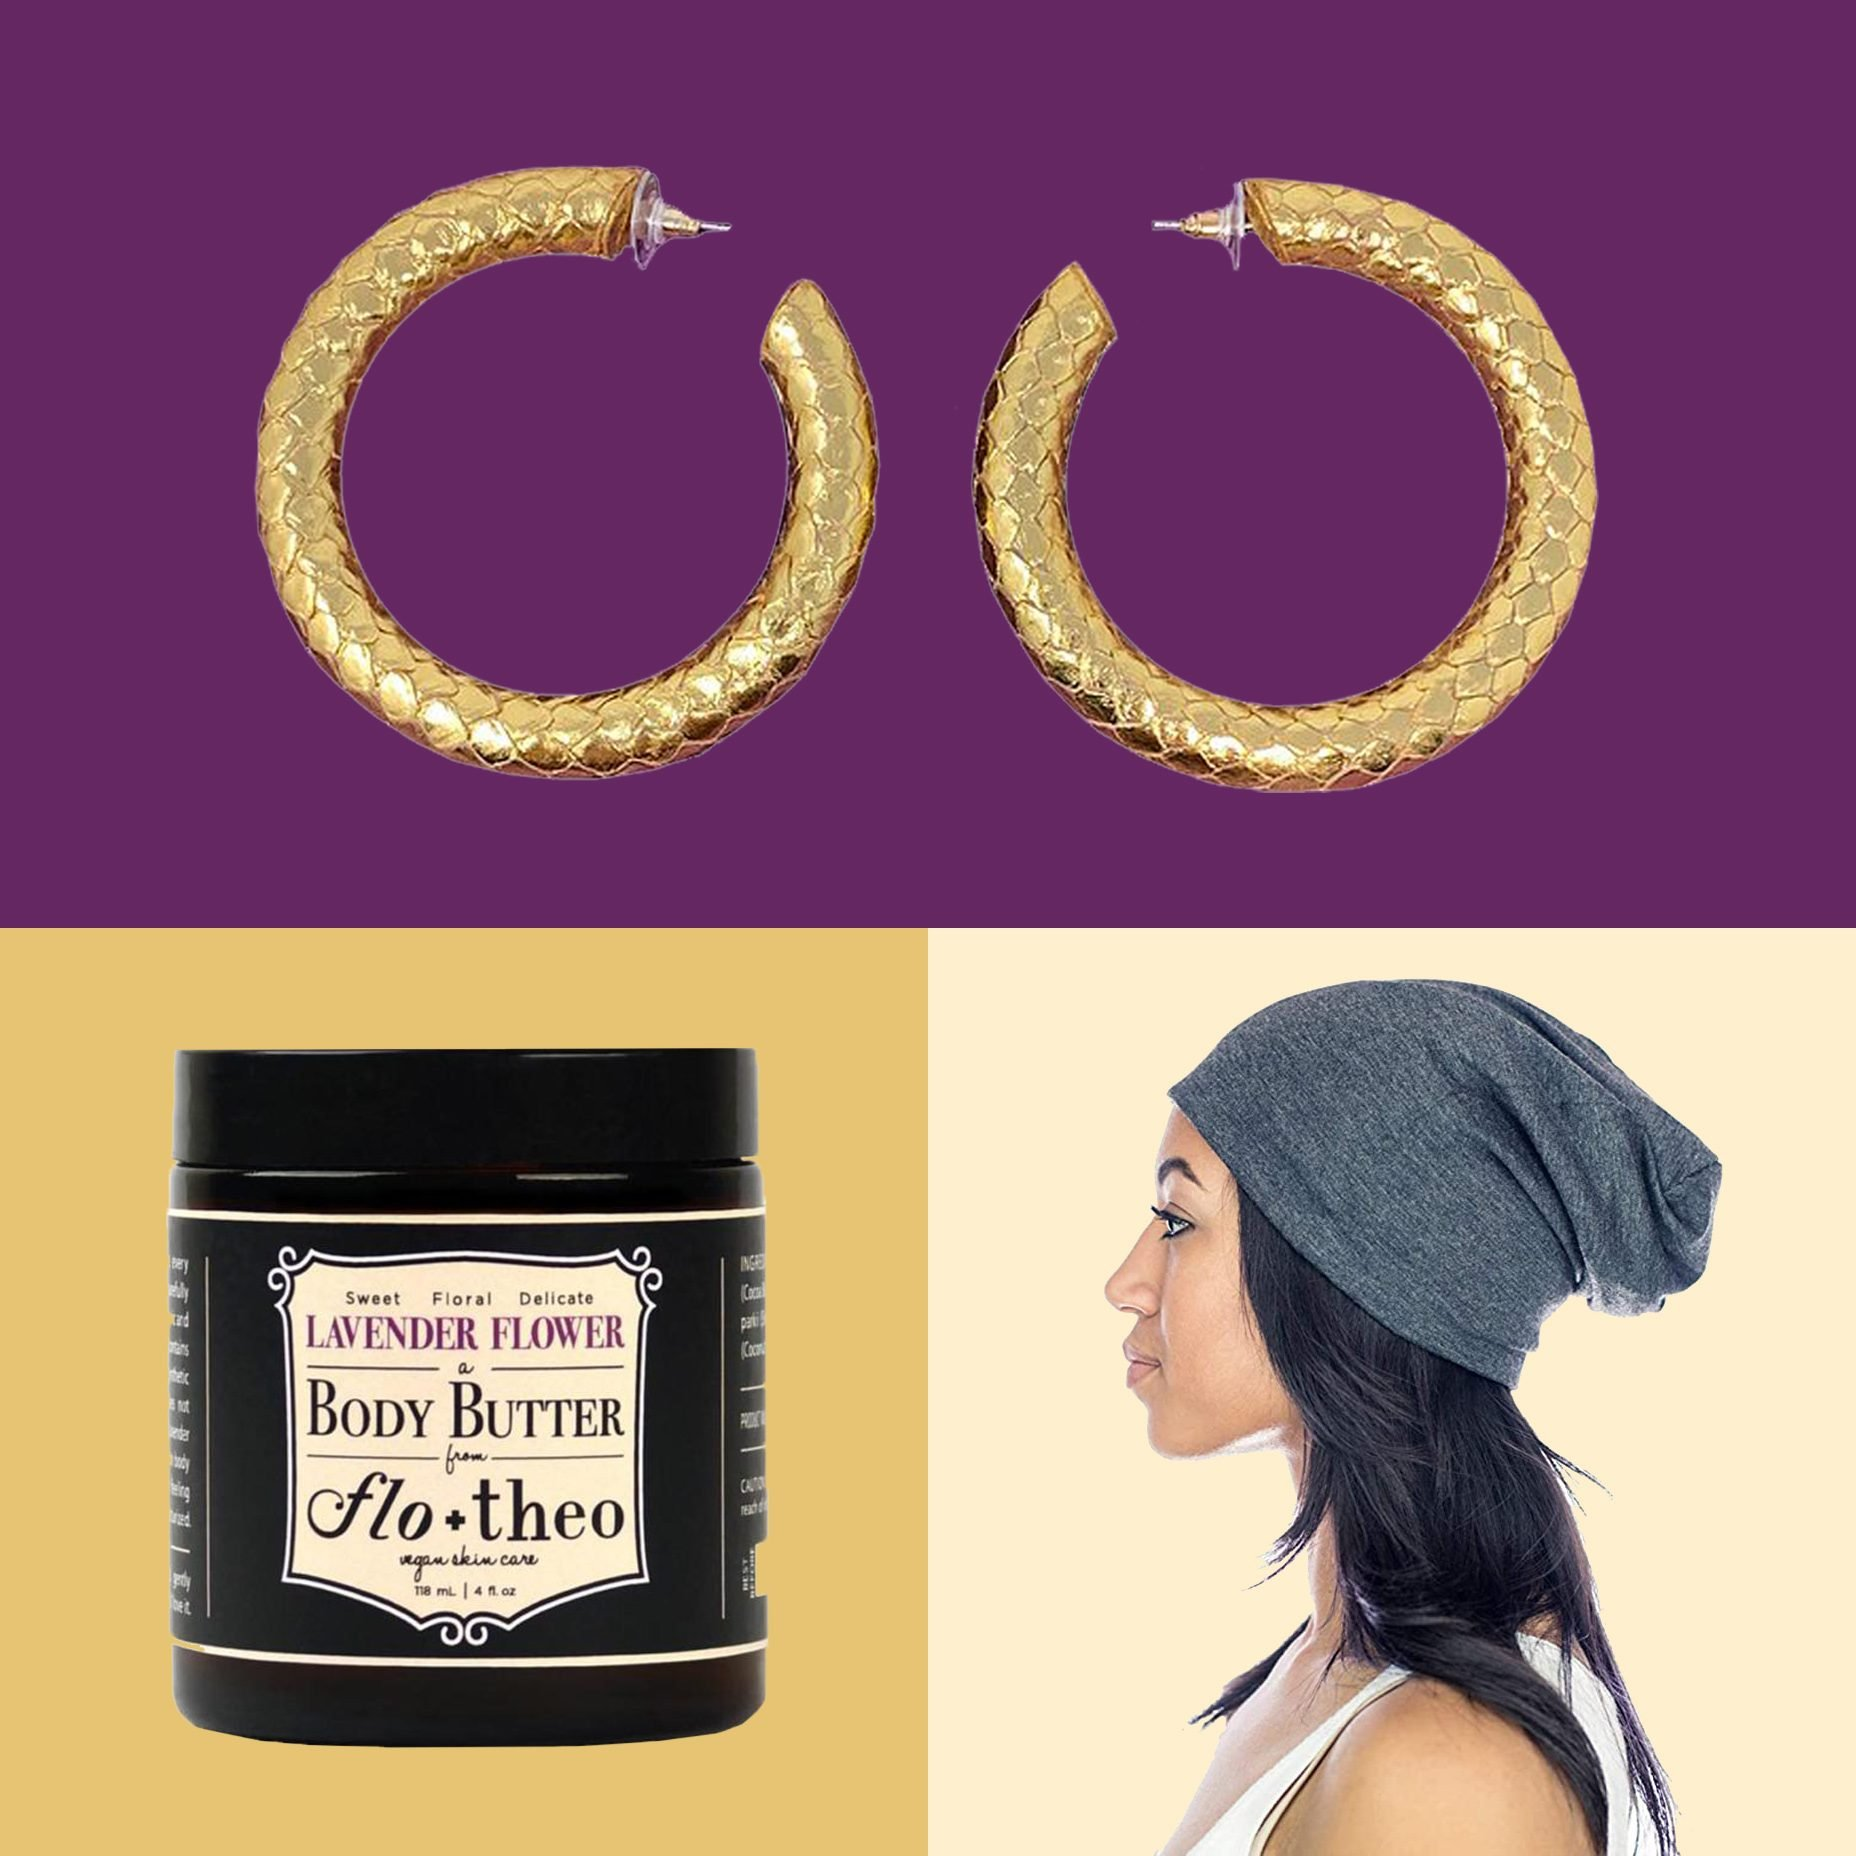 16 Gifts From Black-Owned Businesses We Really Want